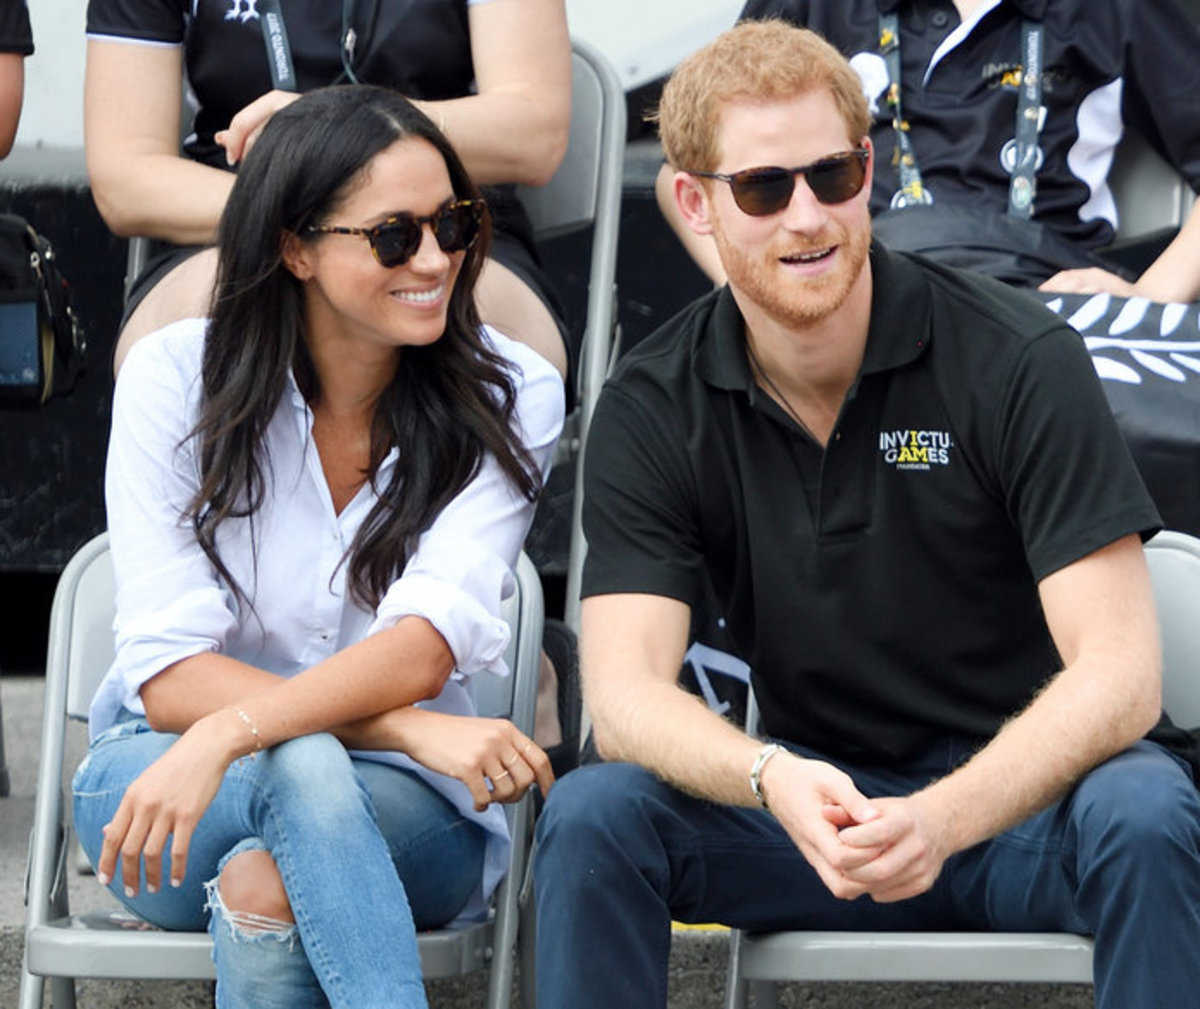 Prince Harry and Meghan Markle at the 2017 Invictus Games in Toronto, Canada before their engagement